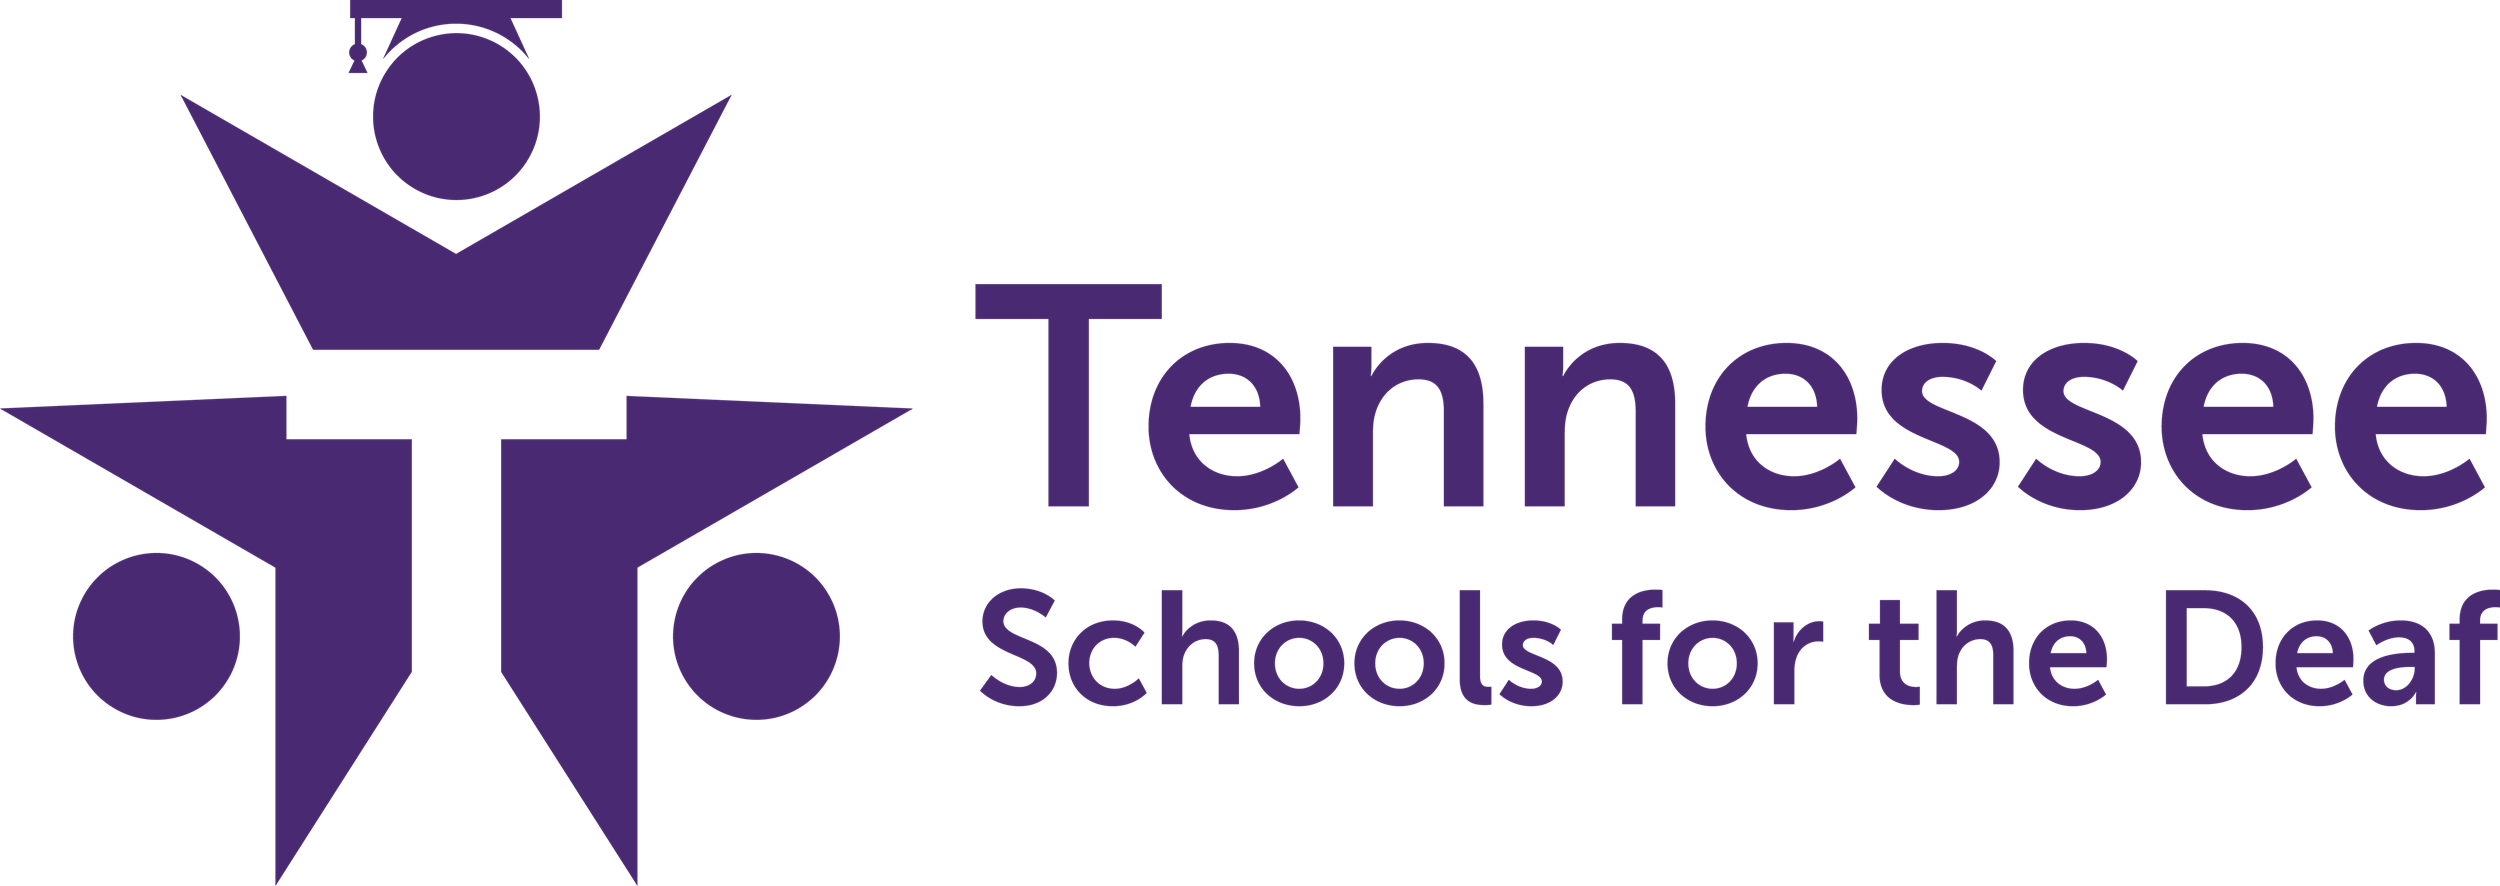 Tennessee Schools for the Deaf Logo